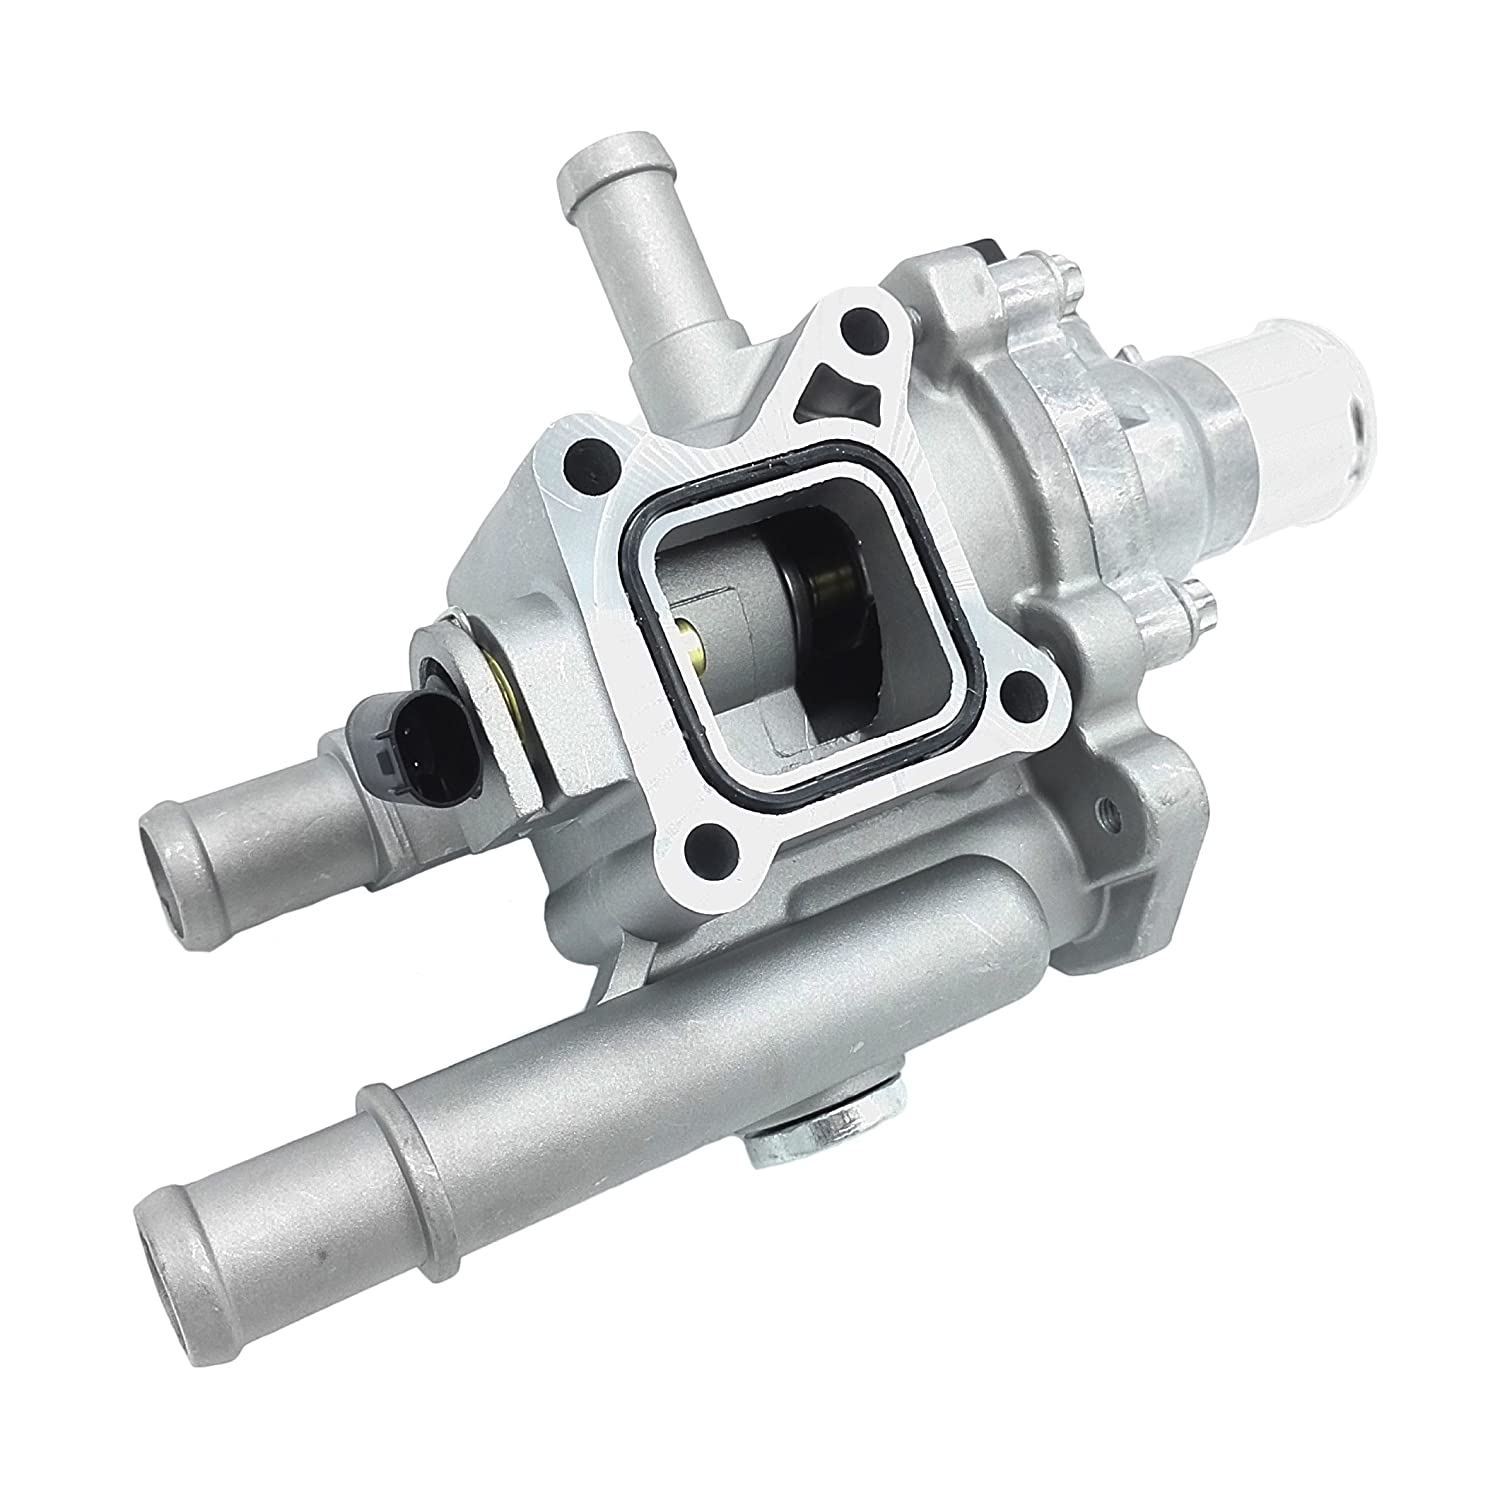 OKAY MOTOR Metal Coolant Thermostat Housing Assembly for 11-18 Chevrolet Cruze Sonic Trax 1.6L 1.8L 25192228